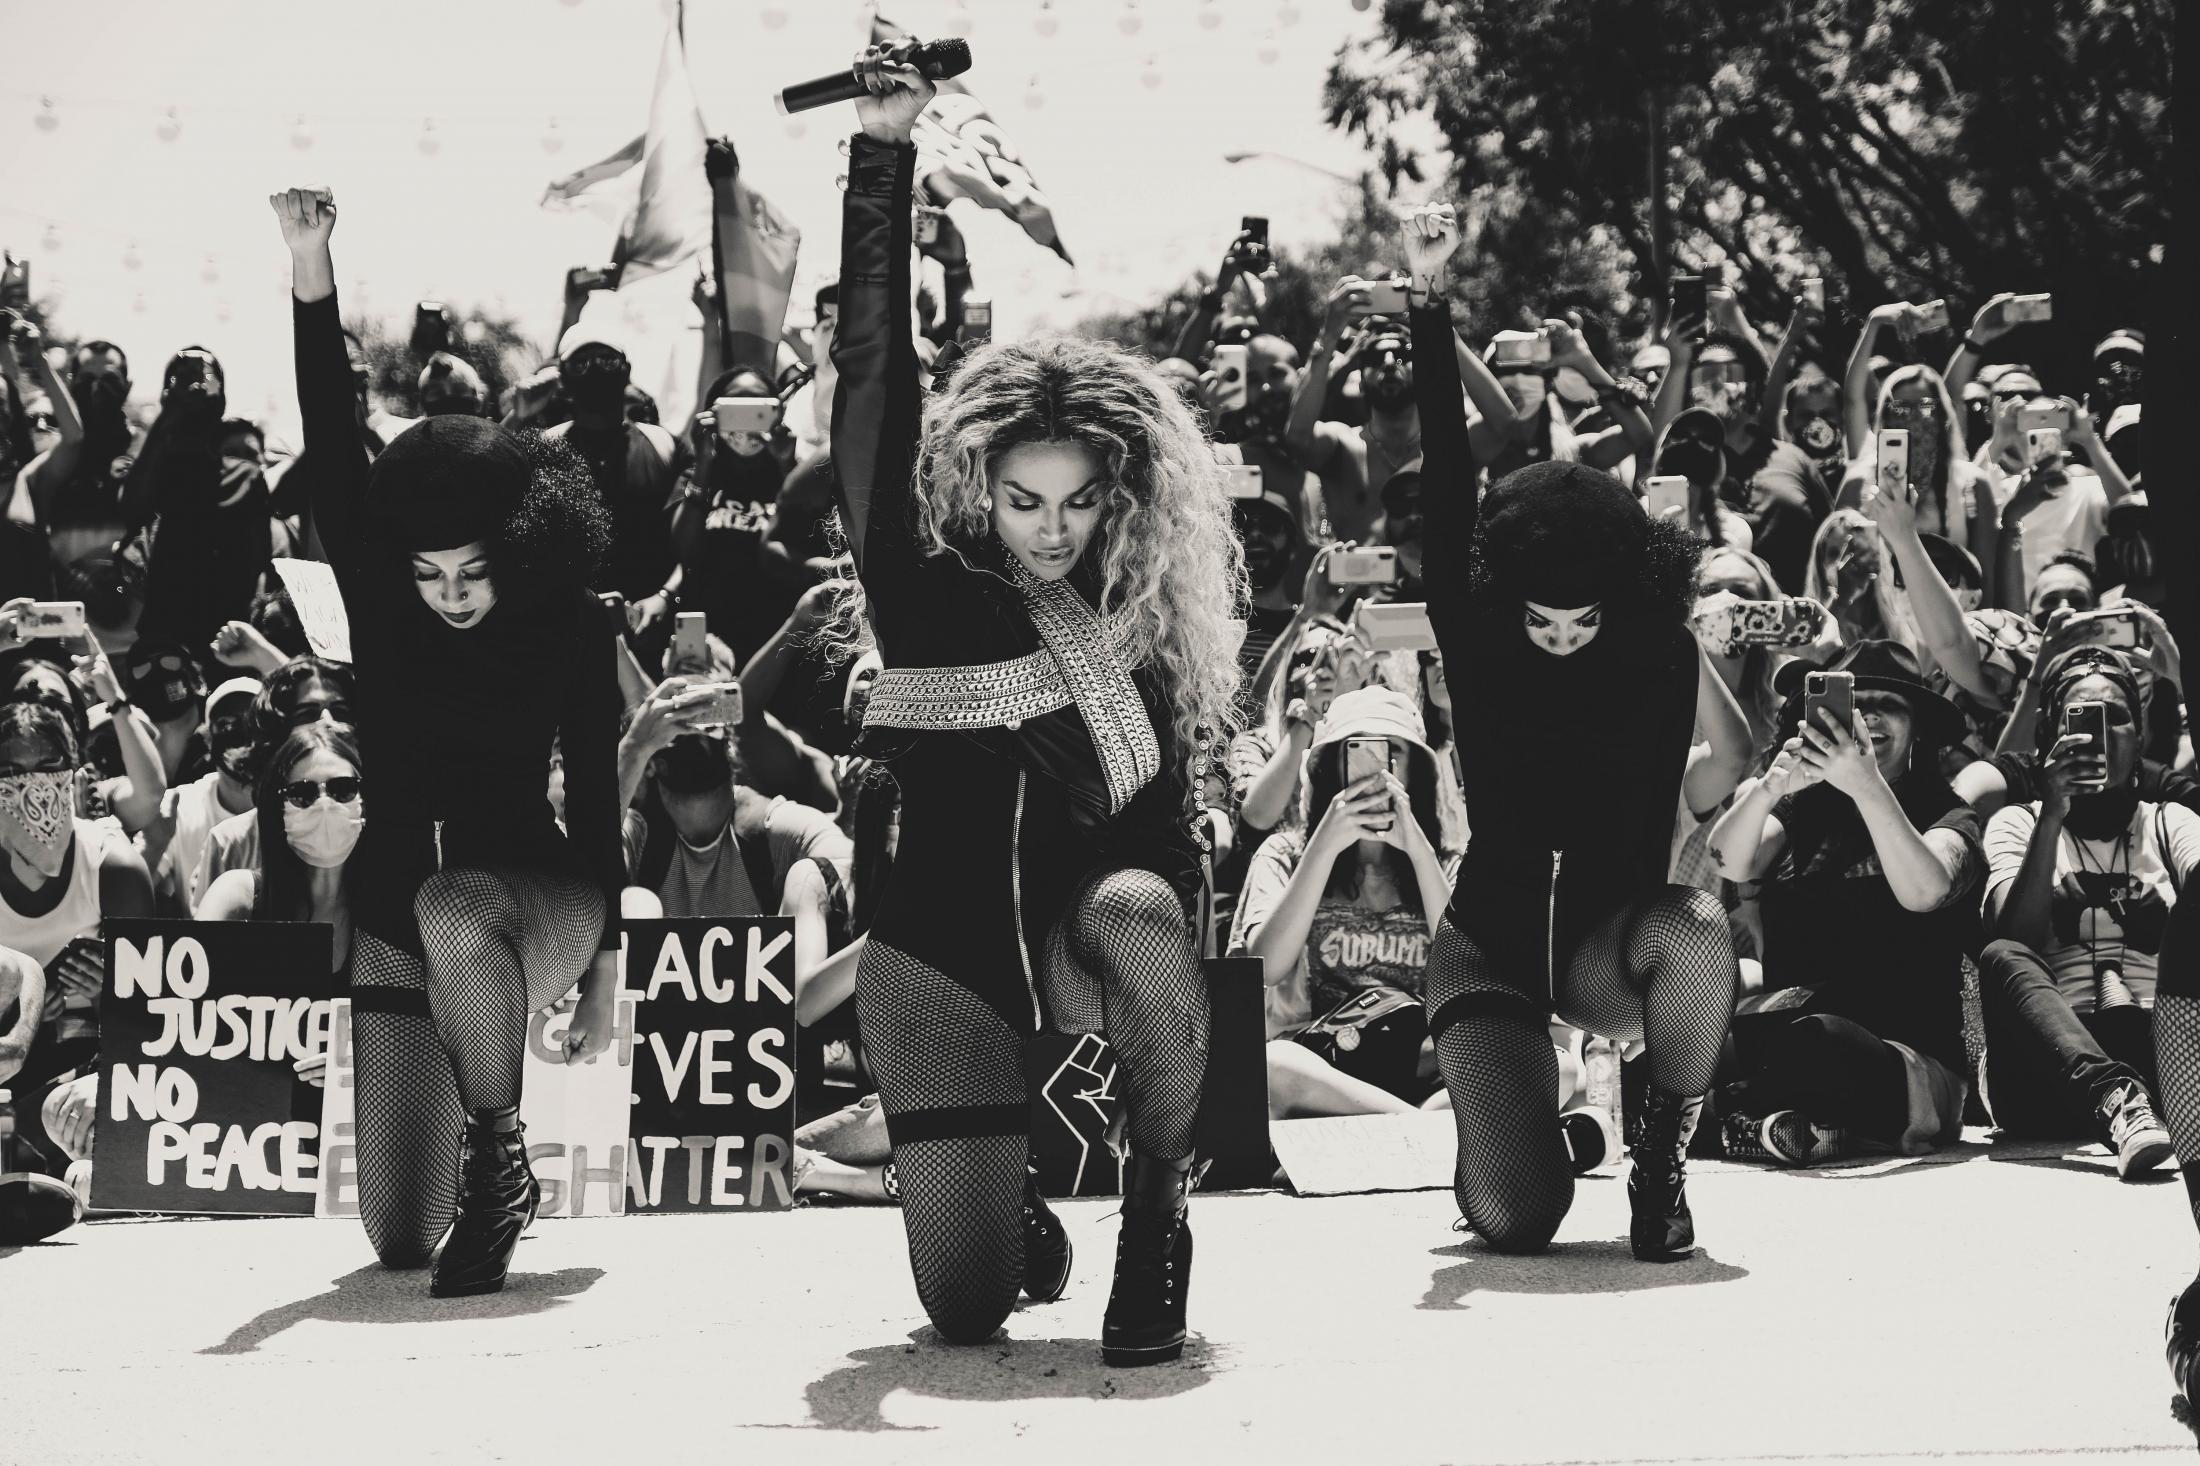 """LOS ANGELES, CALIFORNIA - JUNE 14: Michell'e """"Miss Shalae"""" Michaels (C) performs at the All Black Lives Matter Solidarity March on June 14, 2020 in Los Angeles, California. Anti-racism and police brutality protests continue to be held in cities throughout the country over the death of George Floyd, who was killed while in police custody in Minneapolis on May 25th. (Photo by Sarah Morris/Getty Images)"""